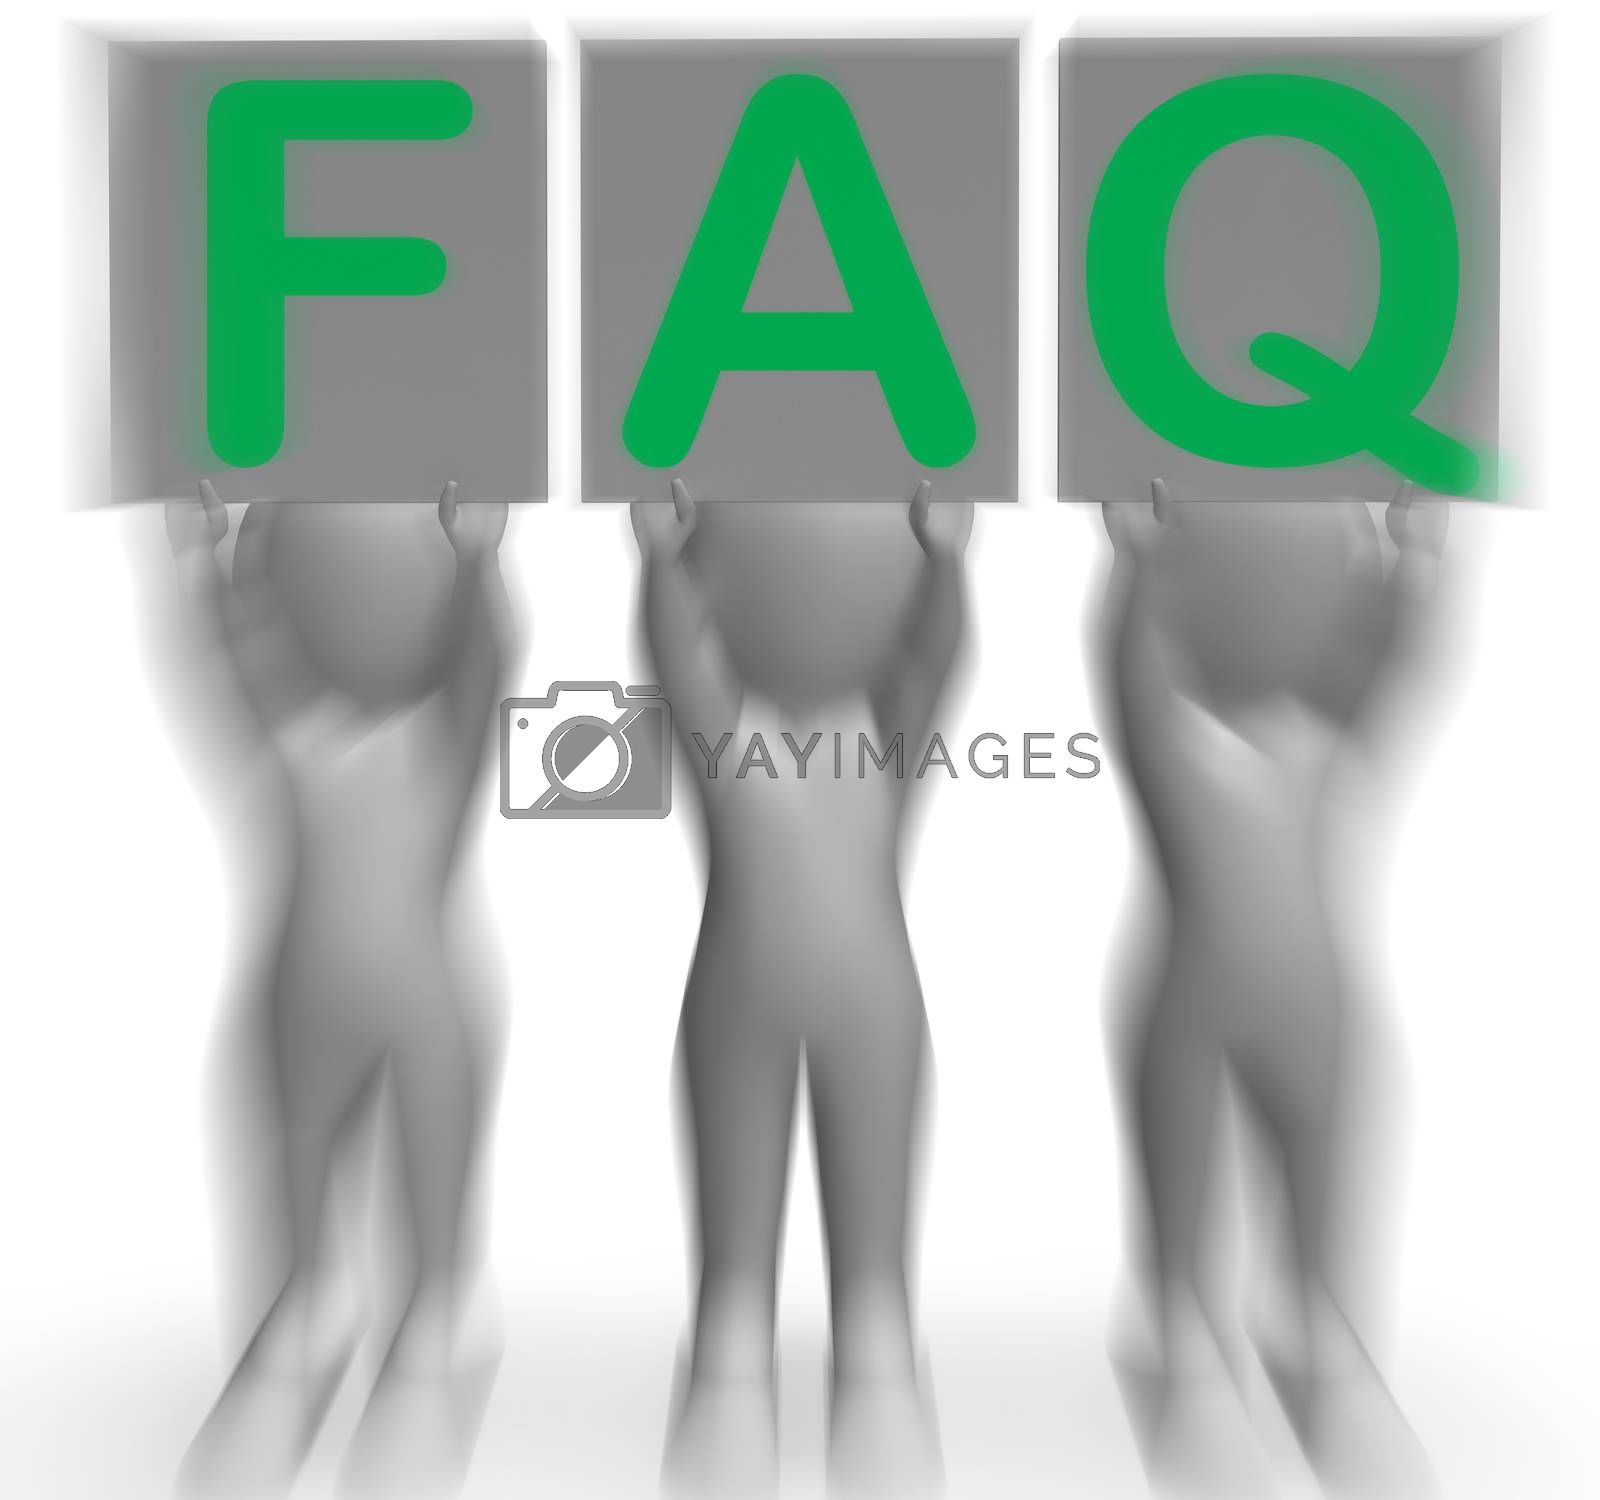 FAQ Placards Shows Frequent Assistance And Support by stuartmiles